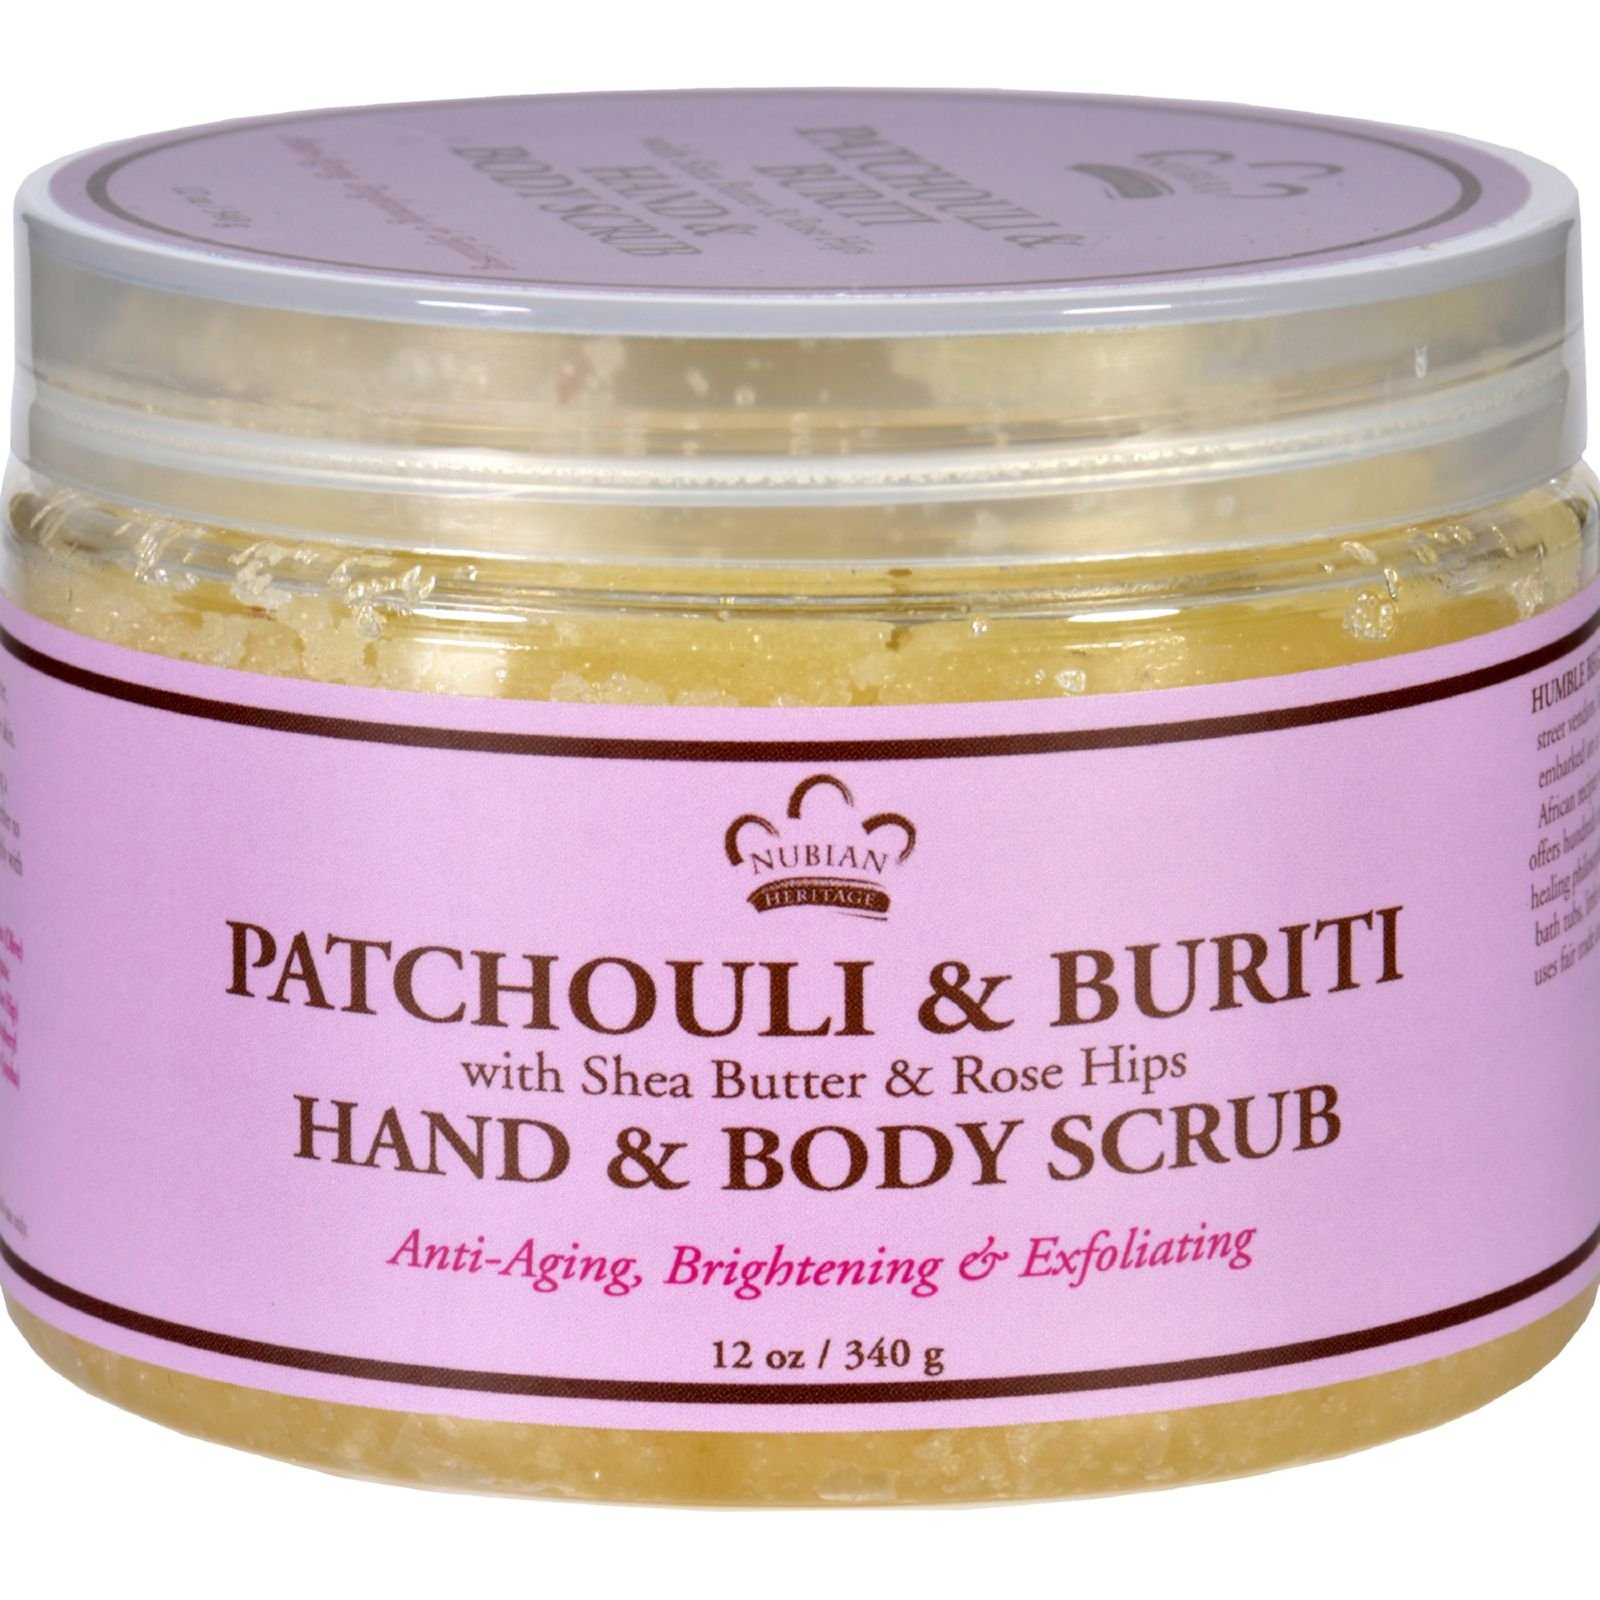 Nubian Heritage Hand and Body Scrub with Shea Butter and Rose Hips - Patchouli and Buriti - Anti Aging - 12 oz (Pack of 4)